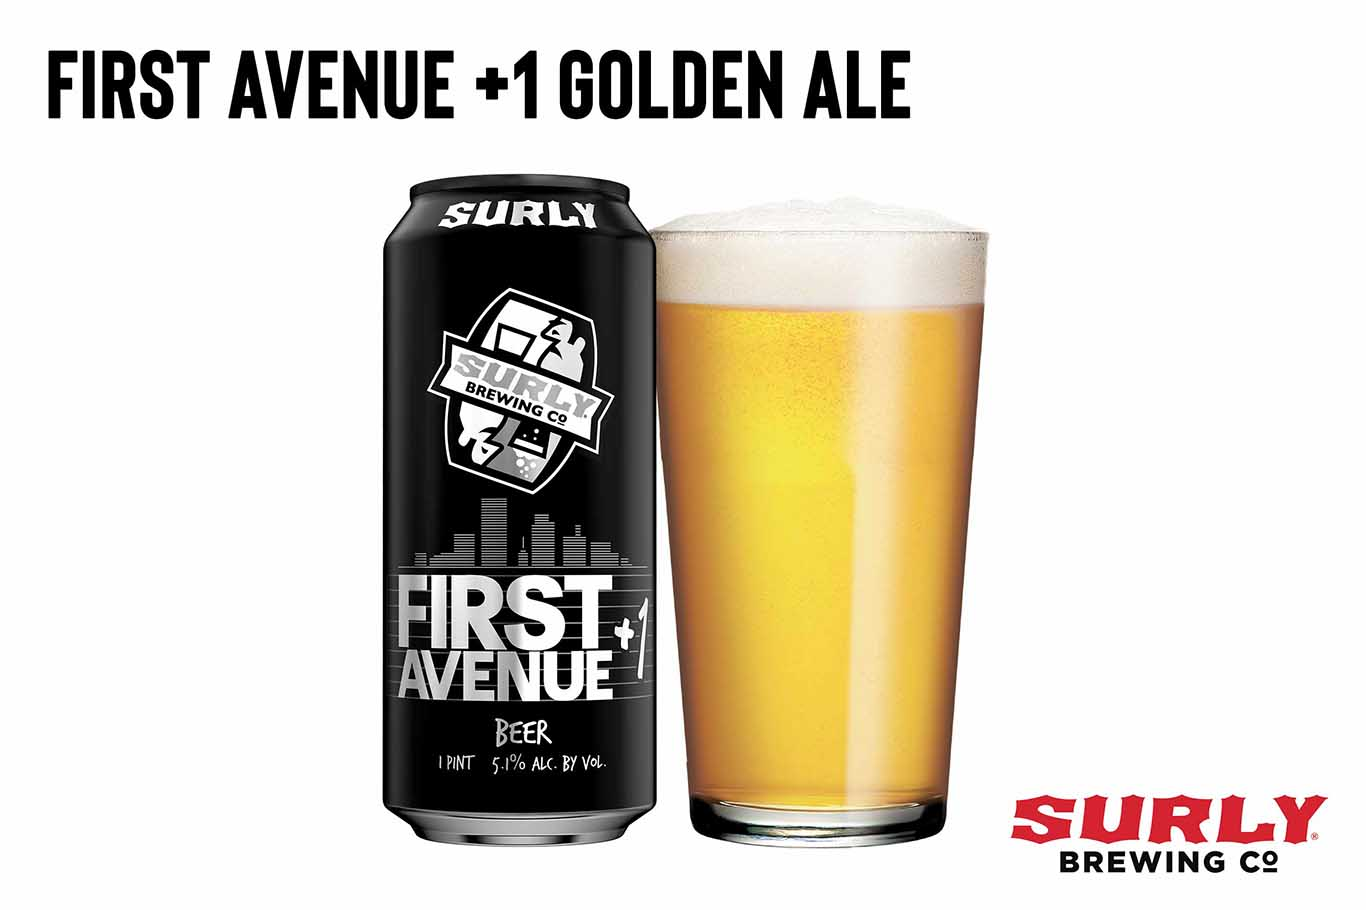 First Avenue +1 Golden Ale